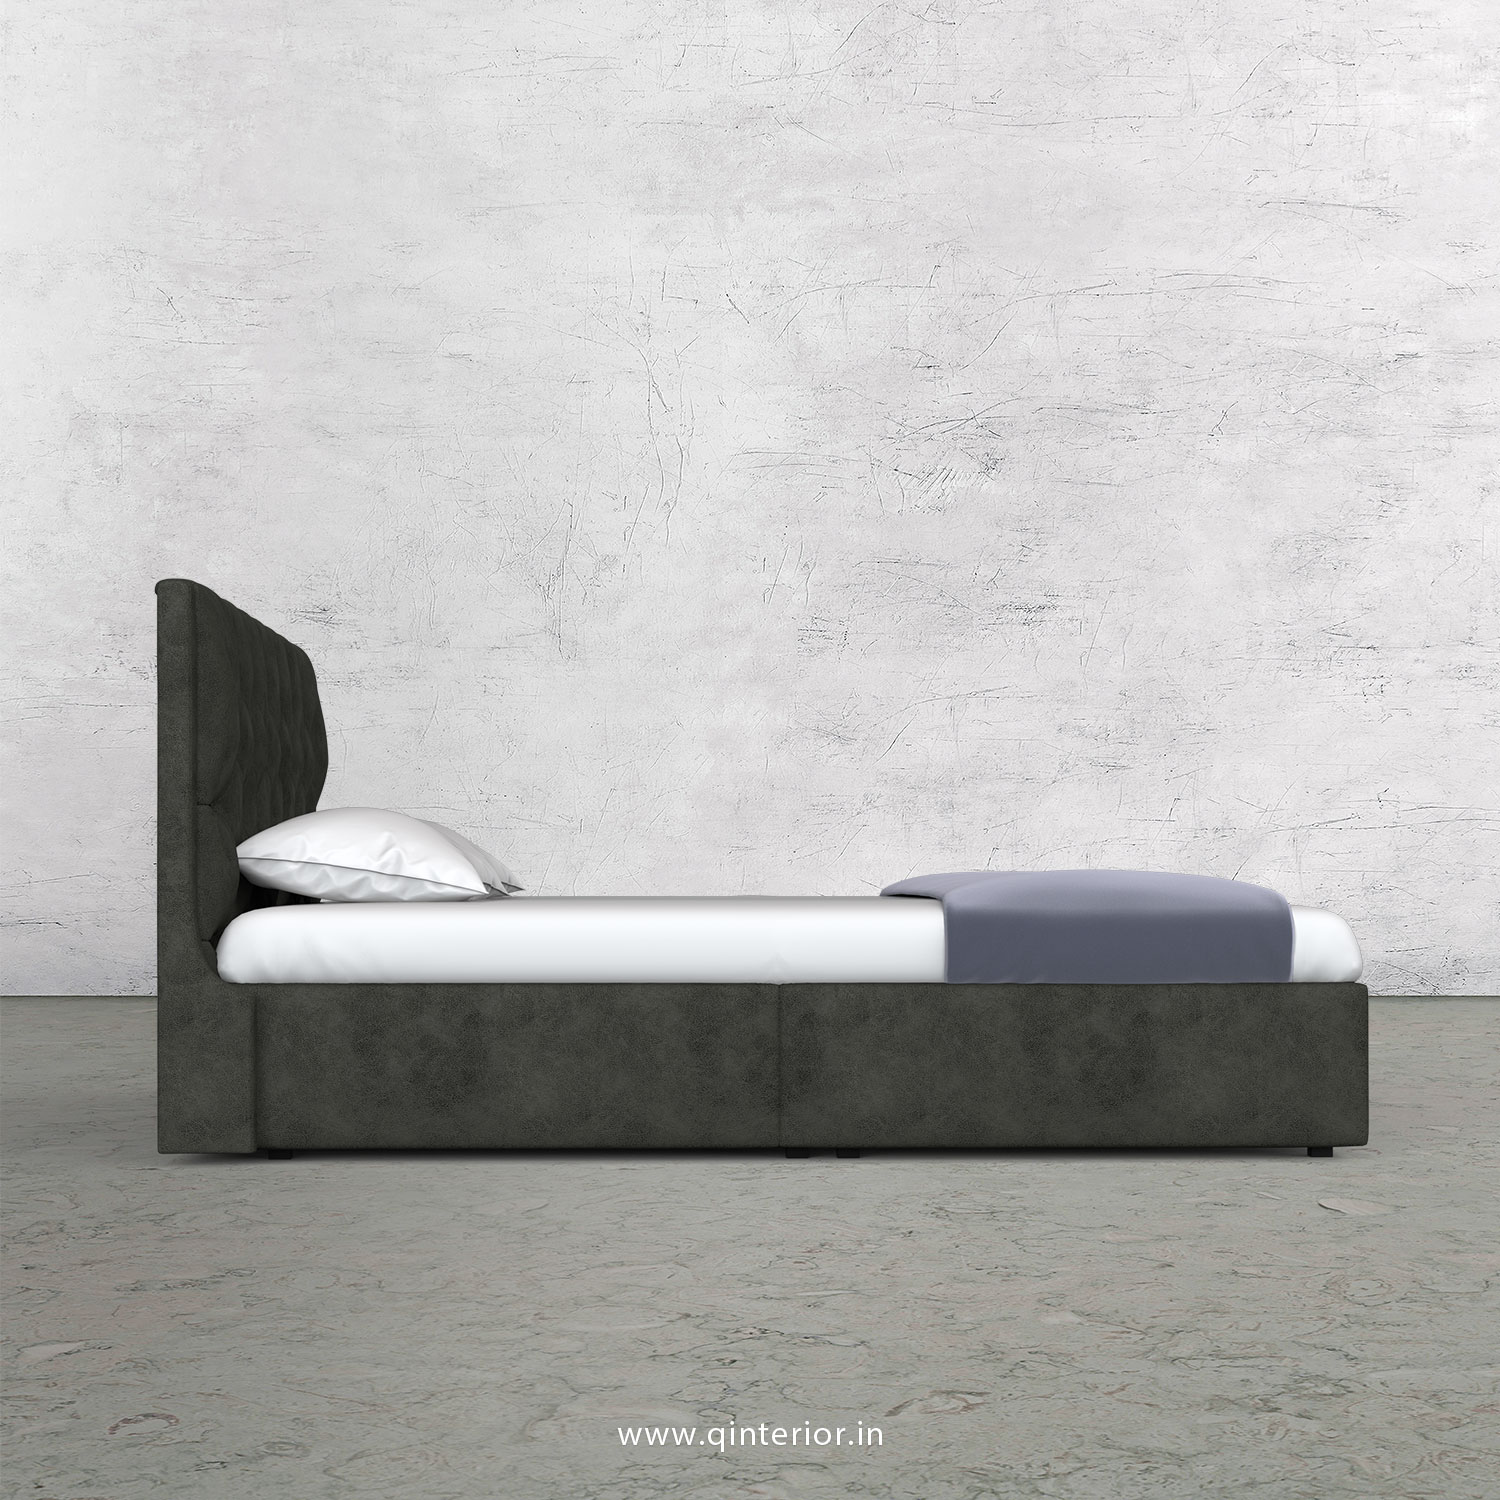 Scorpius Queen Bed in Fab Leather Fabric - QBD009 FL07